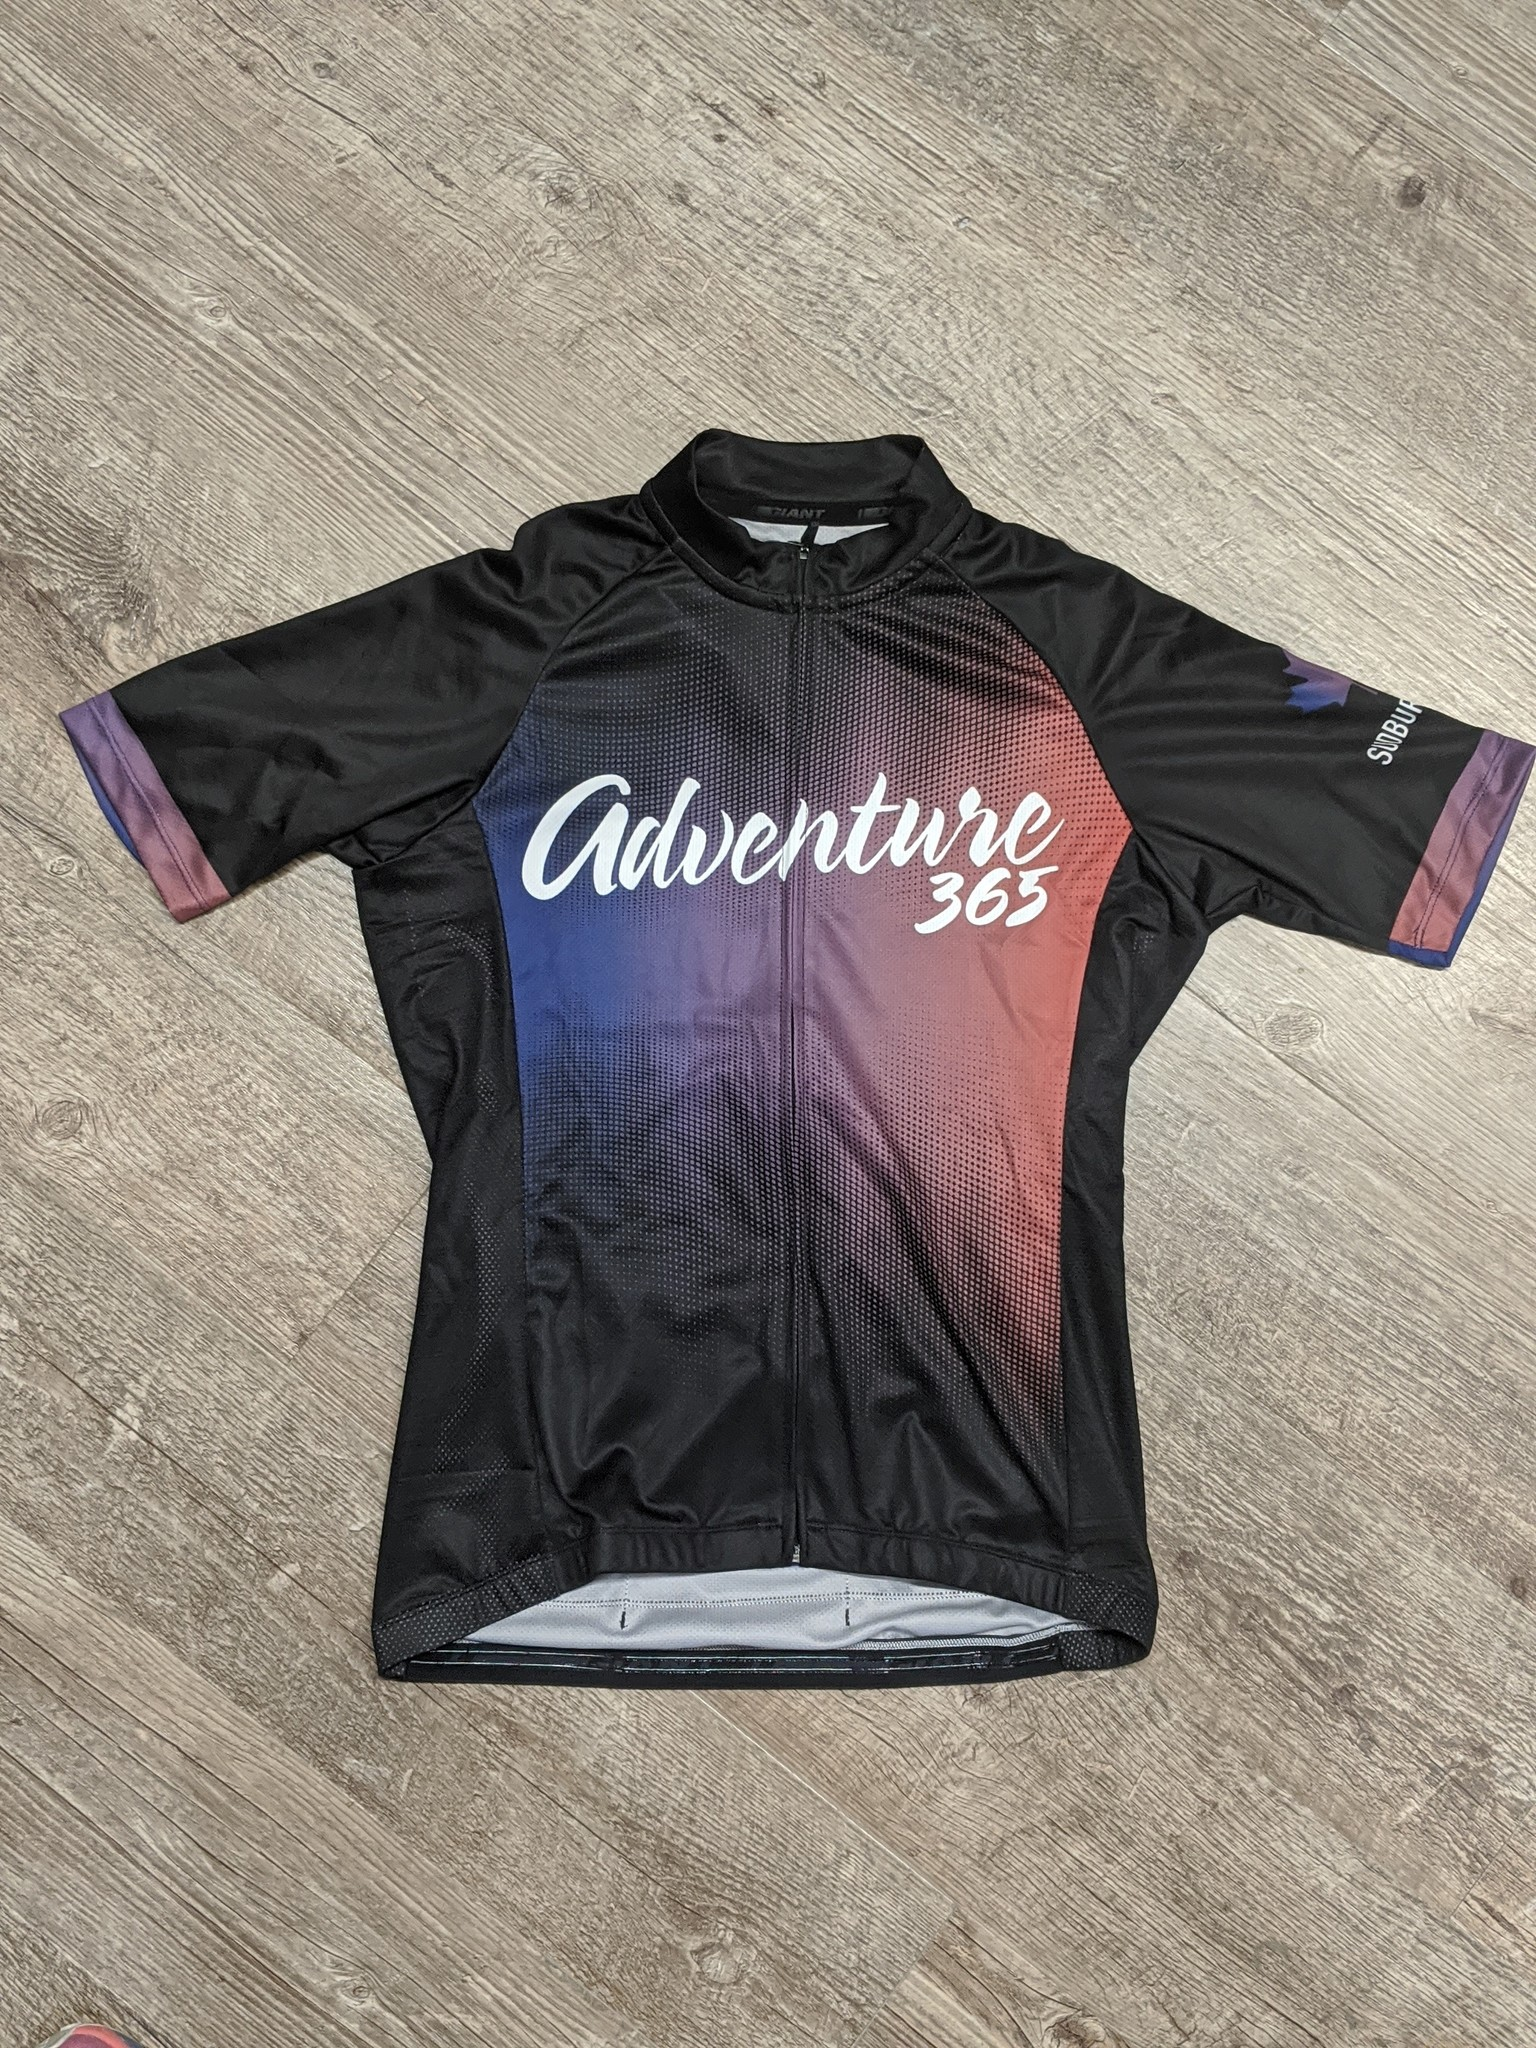 Adventure365 Men's SS Jersey